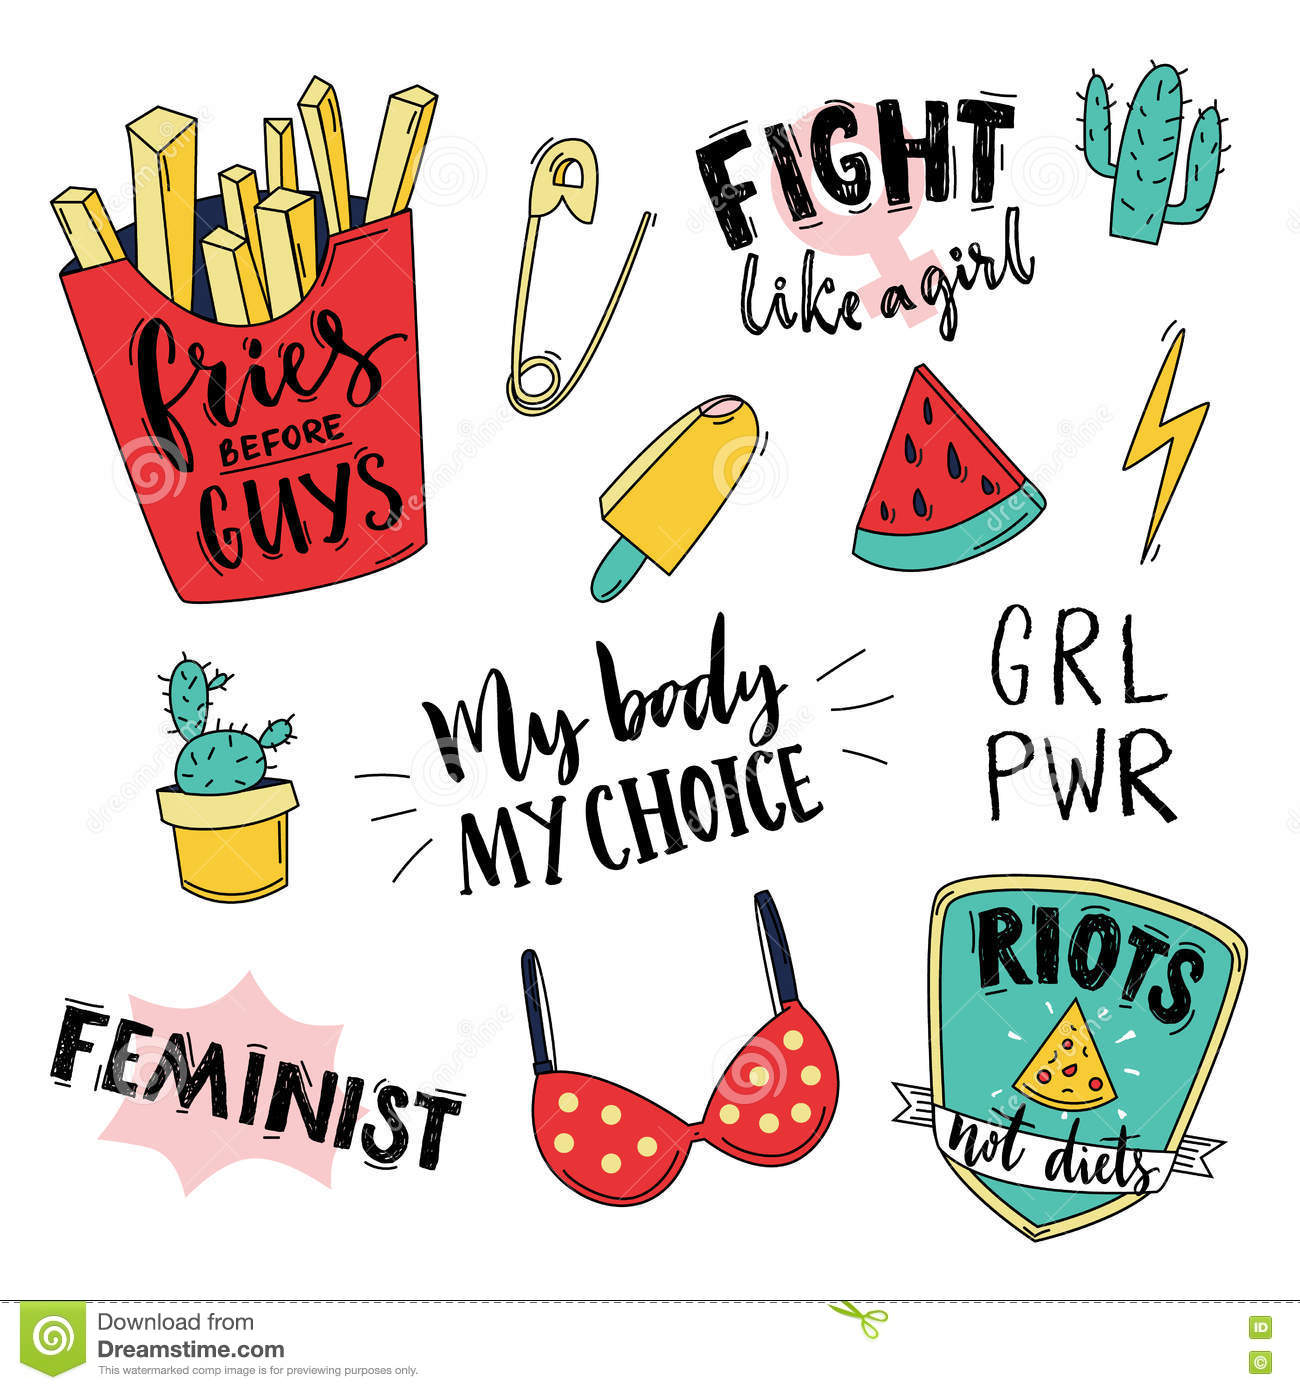 Feminism slogan and patches. Vector 80s style design. Vintage pop stickers and badges. My body, my choice. Fries before